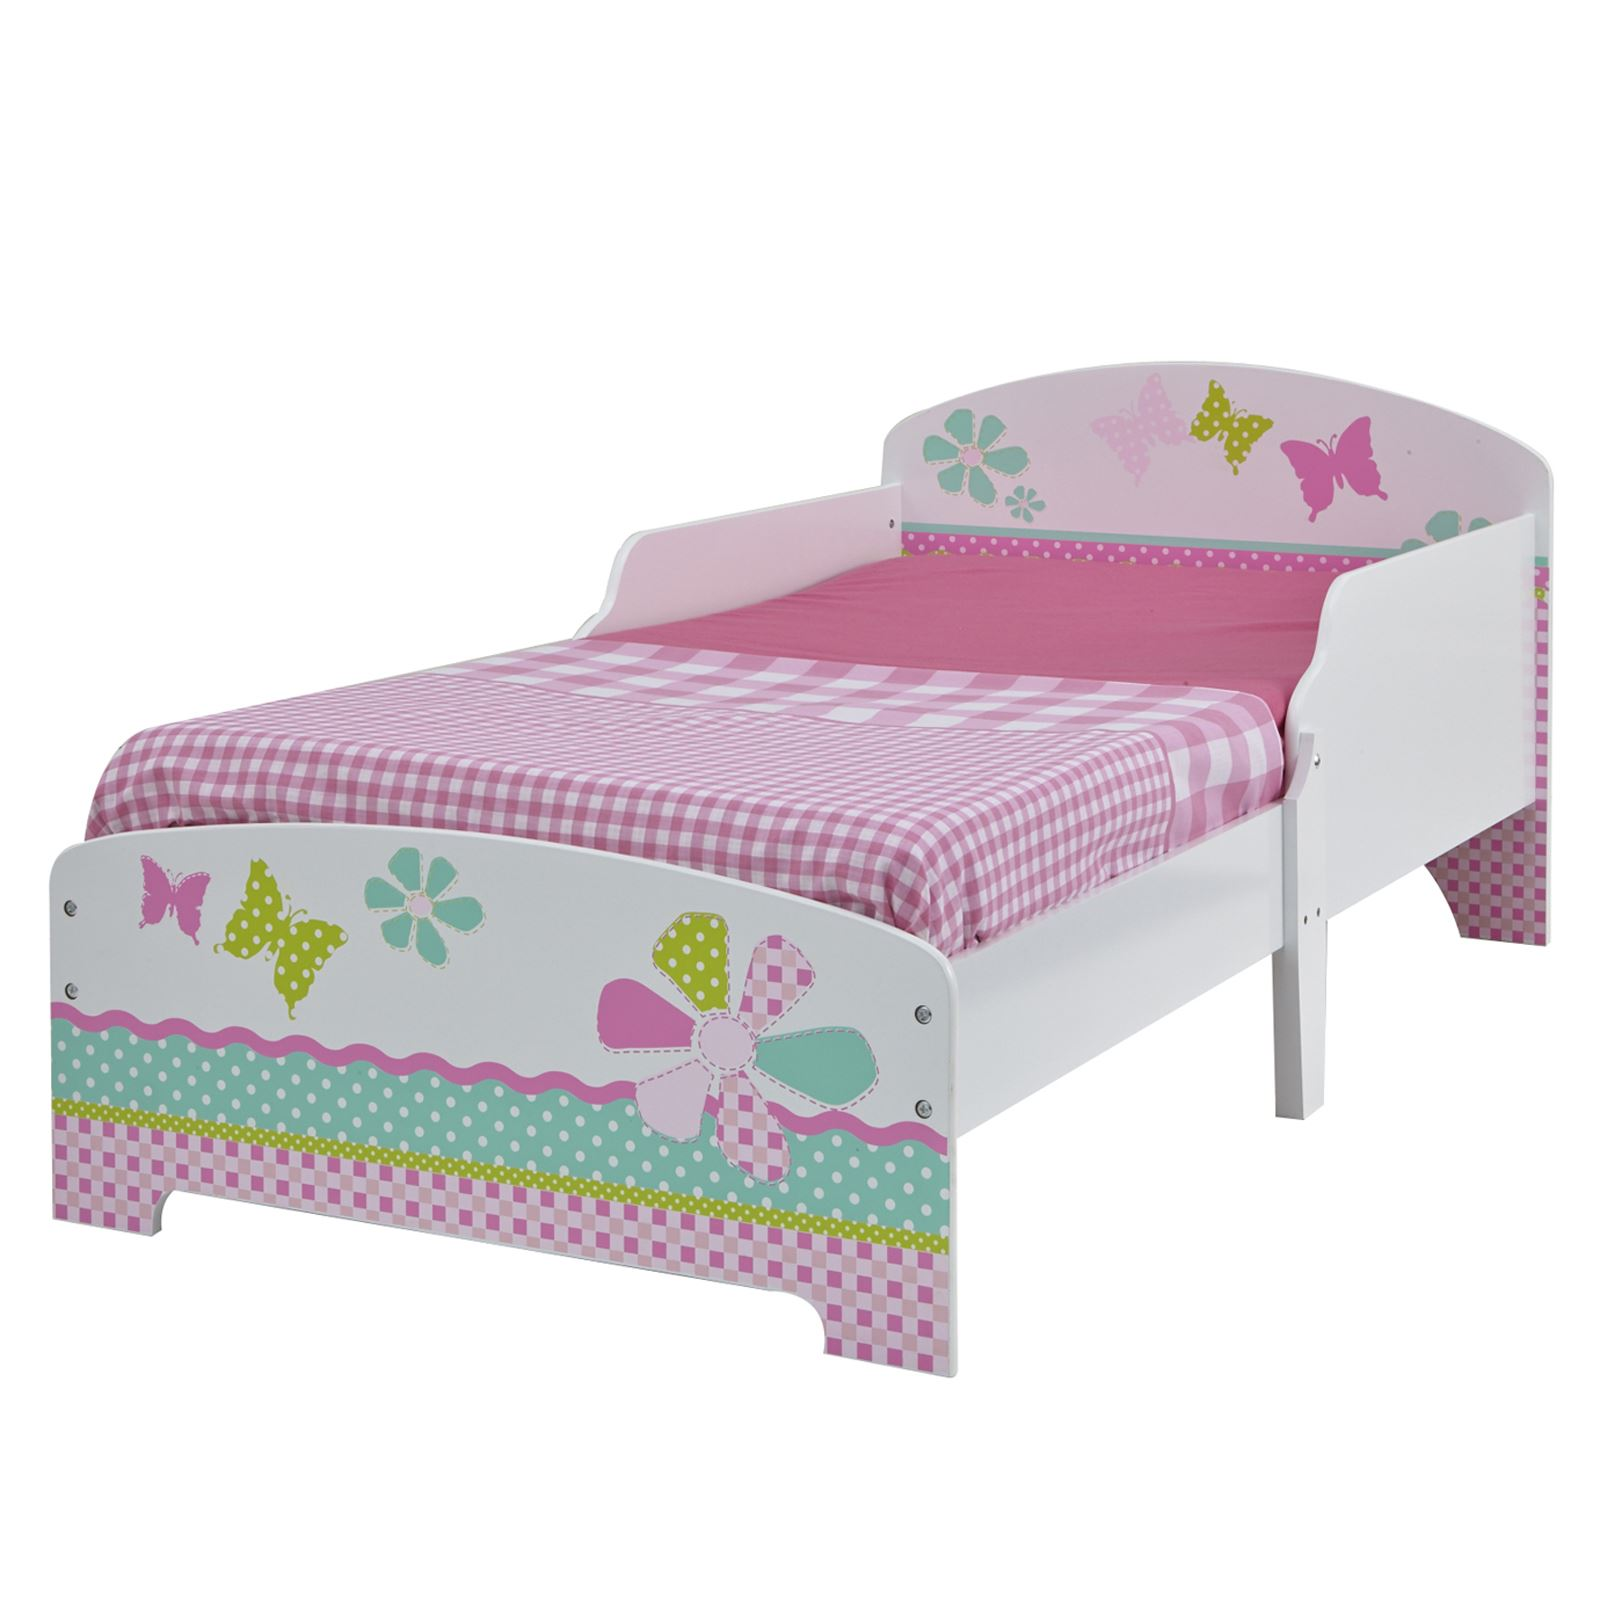 mattress kids. kids-toddler-junior-character-beds-mattress-option-available mattress kids